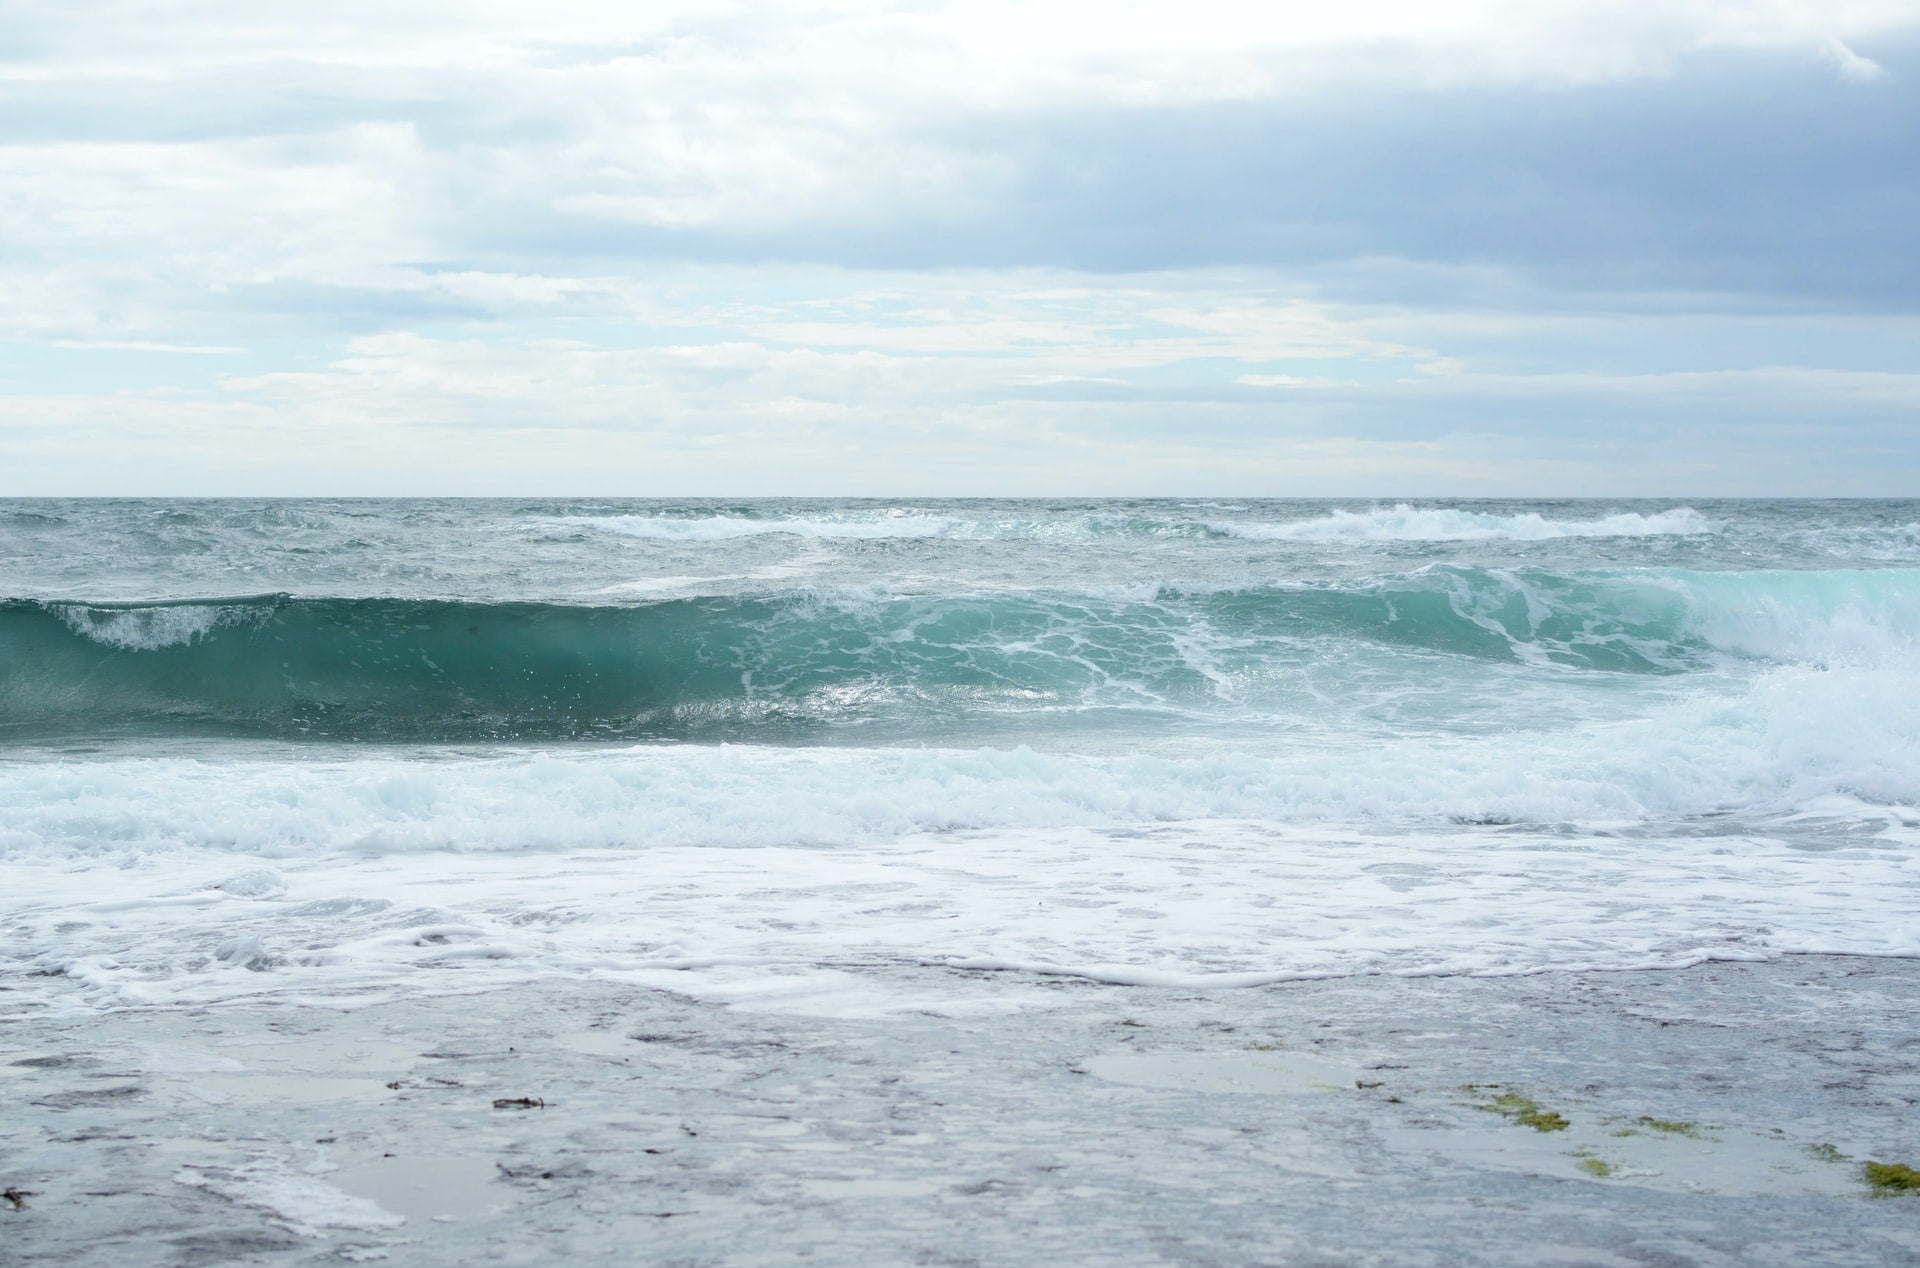 A view of the open sea, and a wave cresting